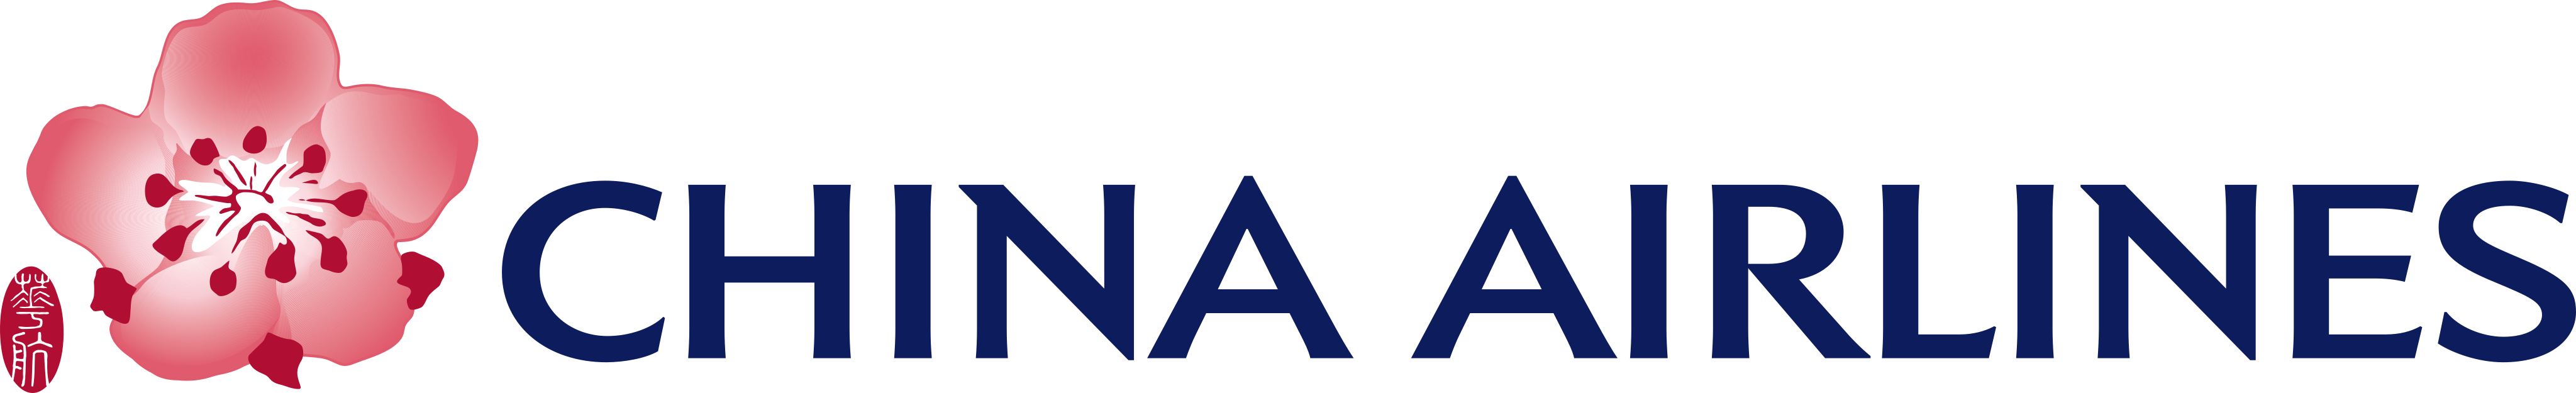 china airlines logo - China Airlines Logo